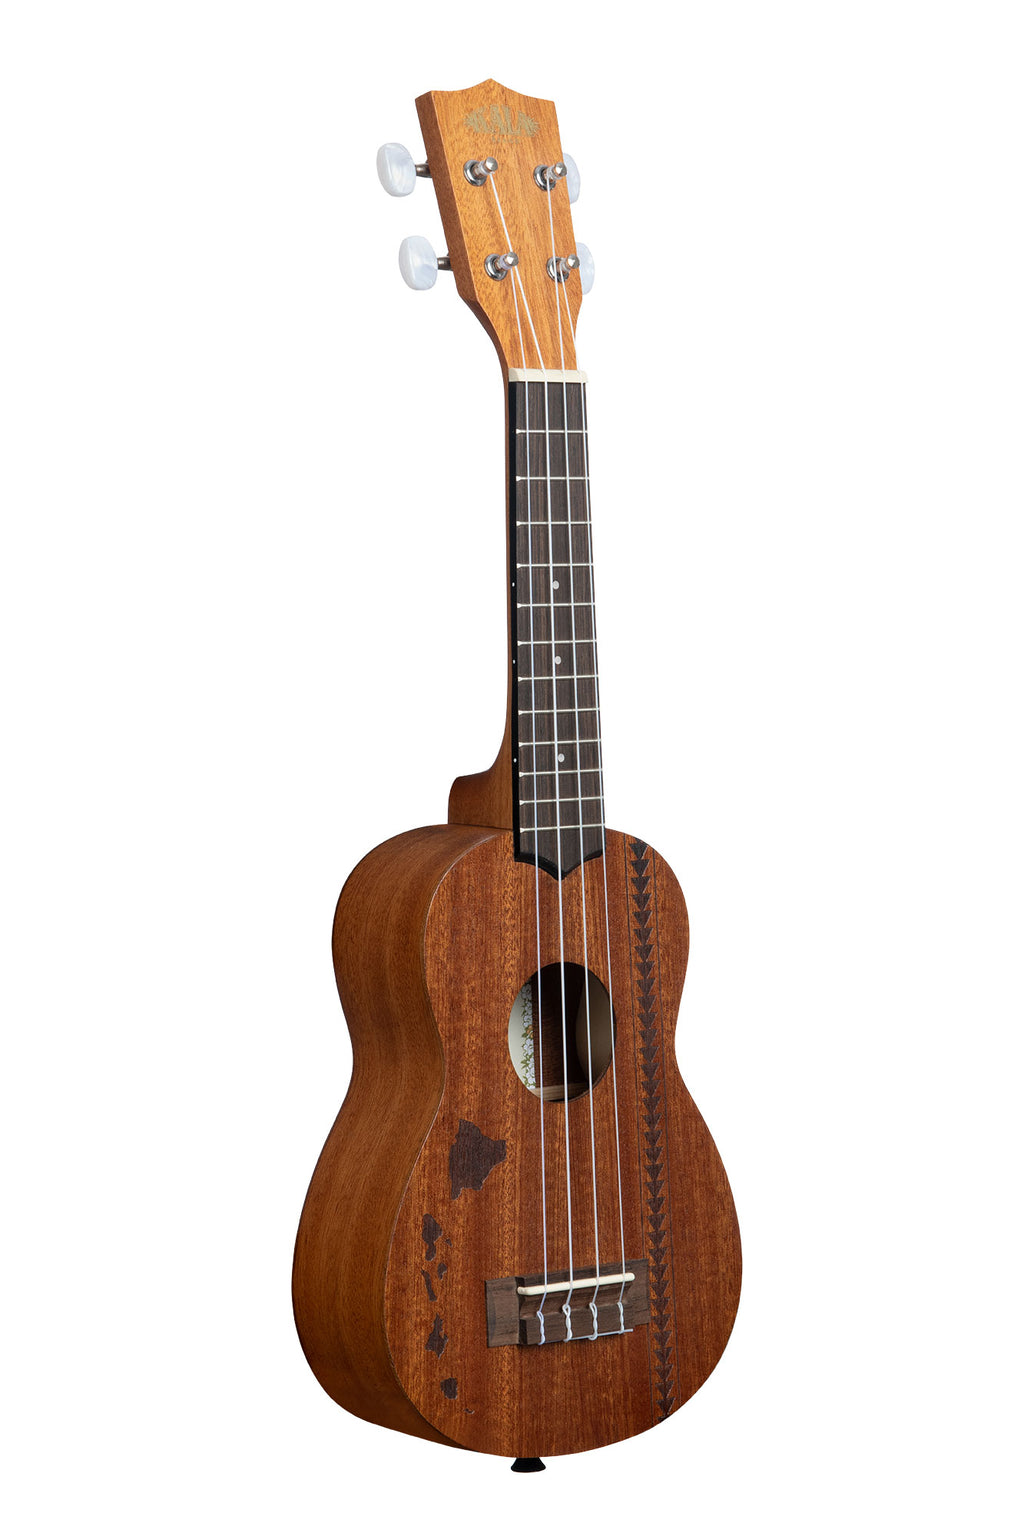 Satin Mahogany Soprano w/ Hawaiian Islands & Tattoo